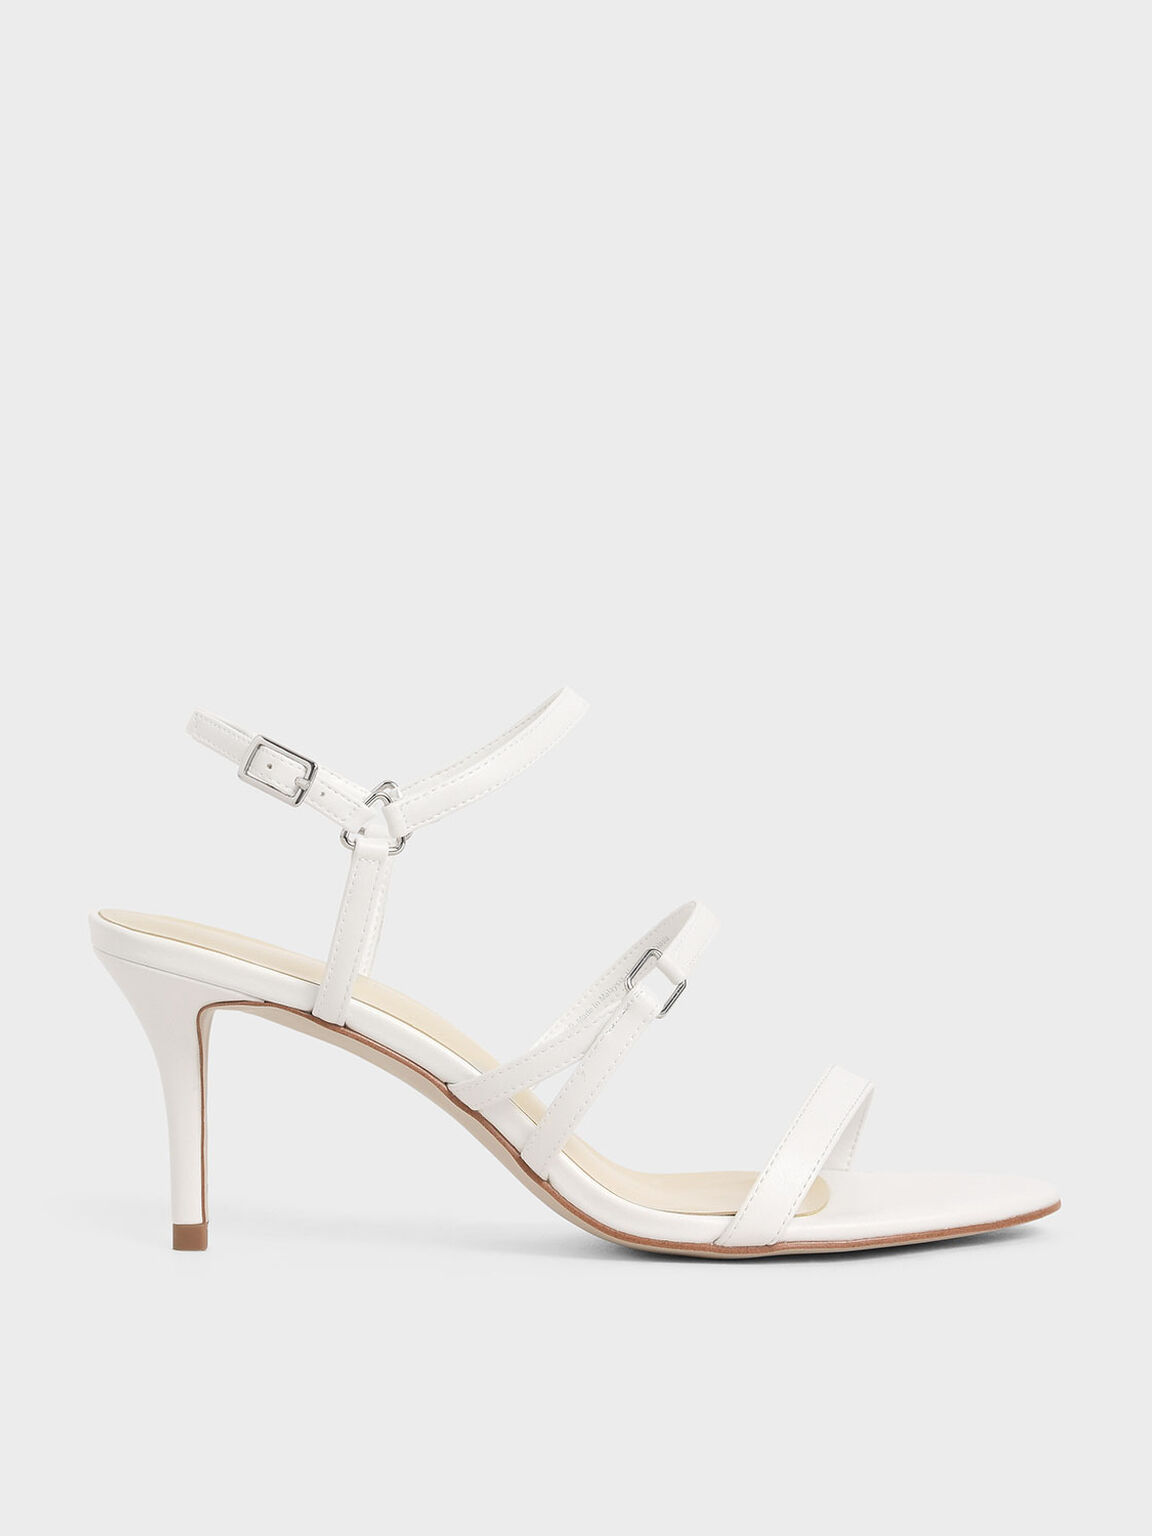 Triple Strap Stiletto Heels, White, hi-res